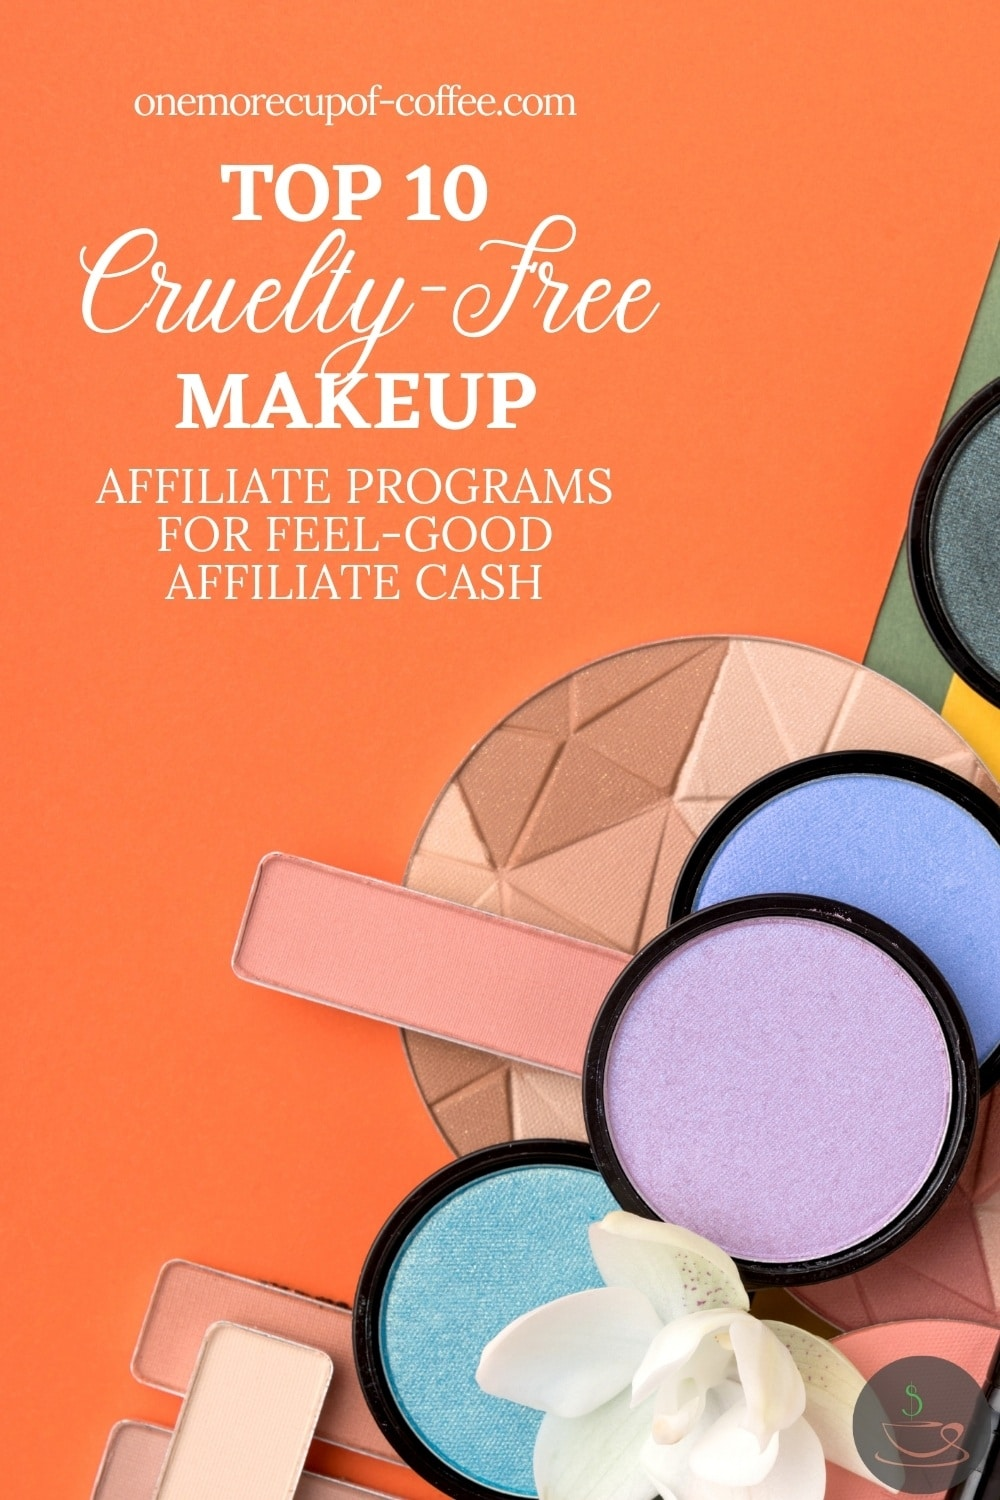 """different makeup laid out on an orange surface, with text overlay """"Top 10 Cruelty-Free Makeup Affiliate Programs For Feel-Good Affiliate Cash"""""""